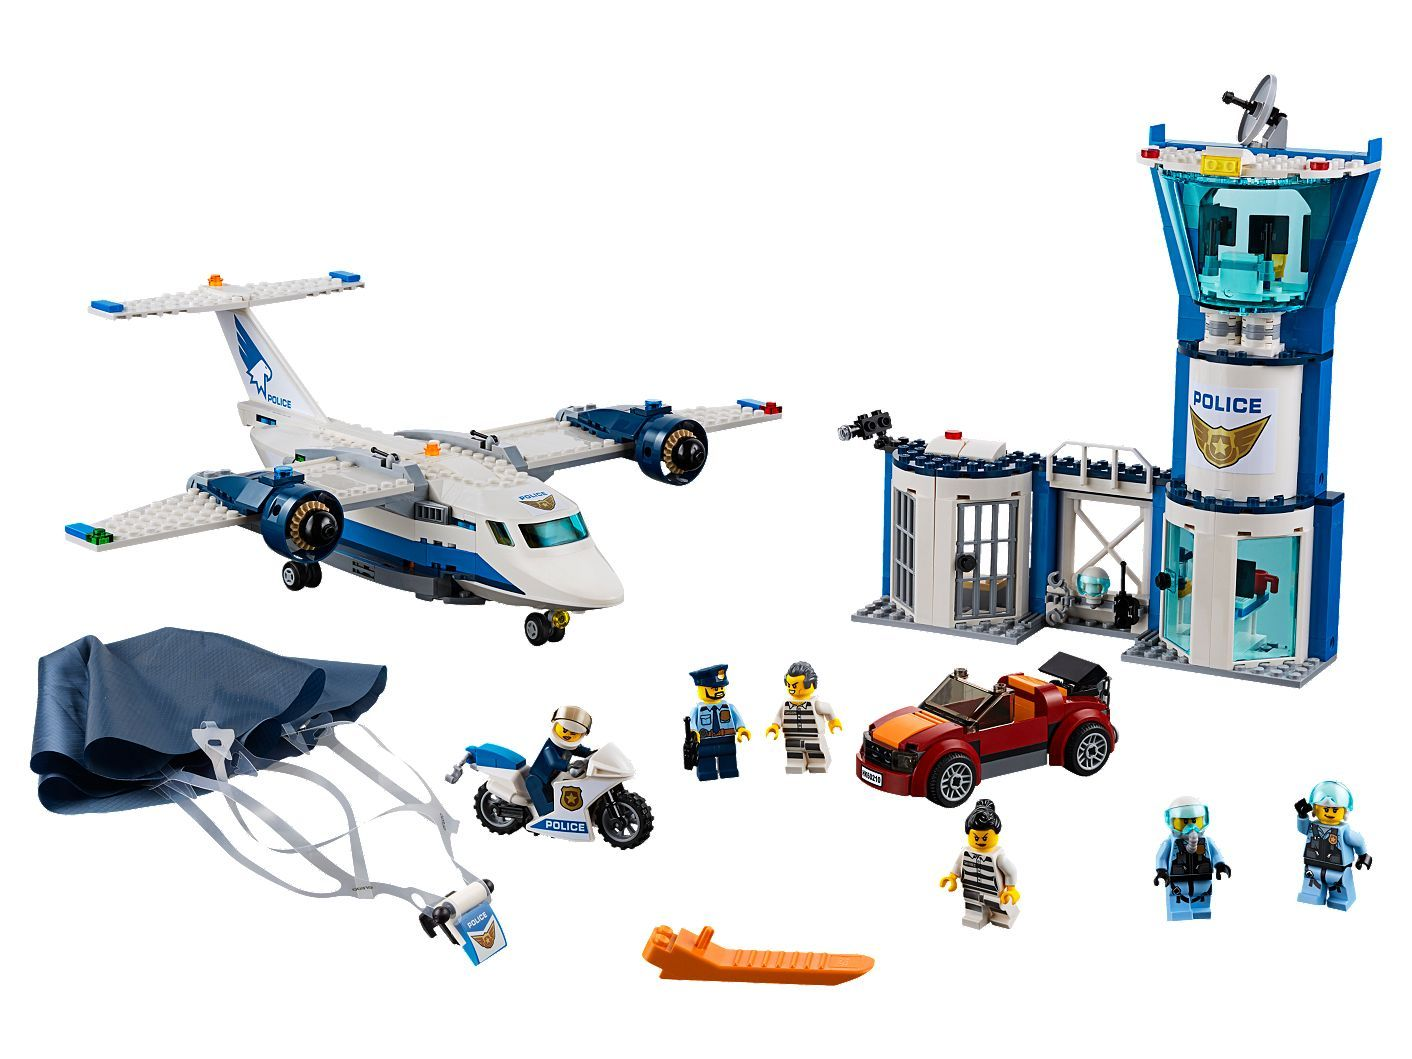 Sky Police Air Base 60210 City Buy Online At The Official Lego Shop Us Lego City Lego Police